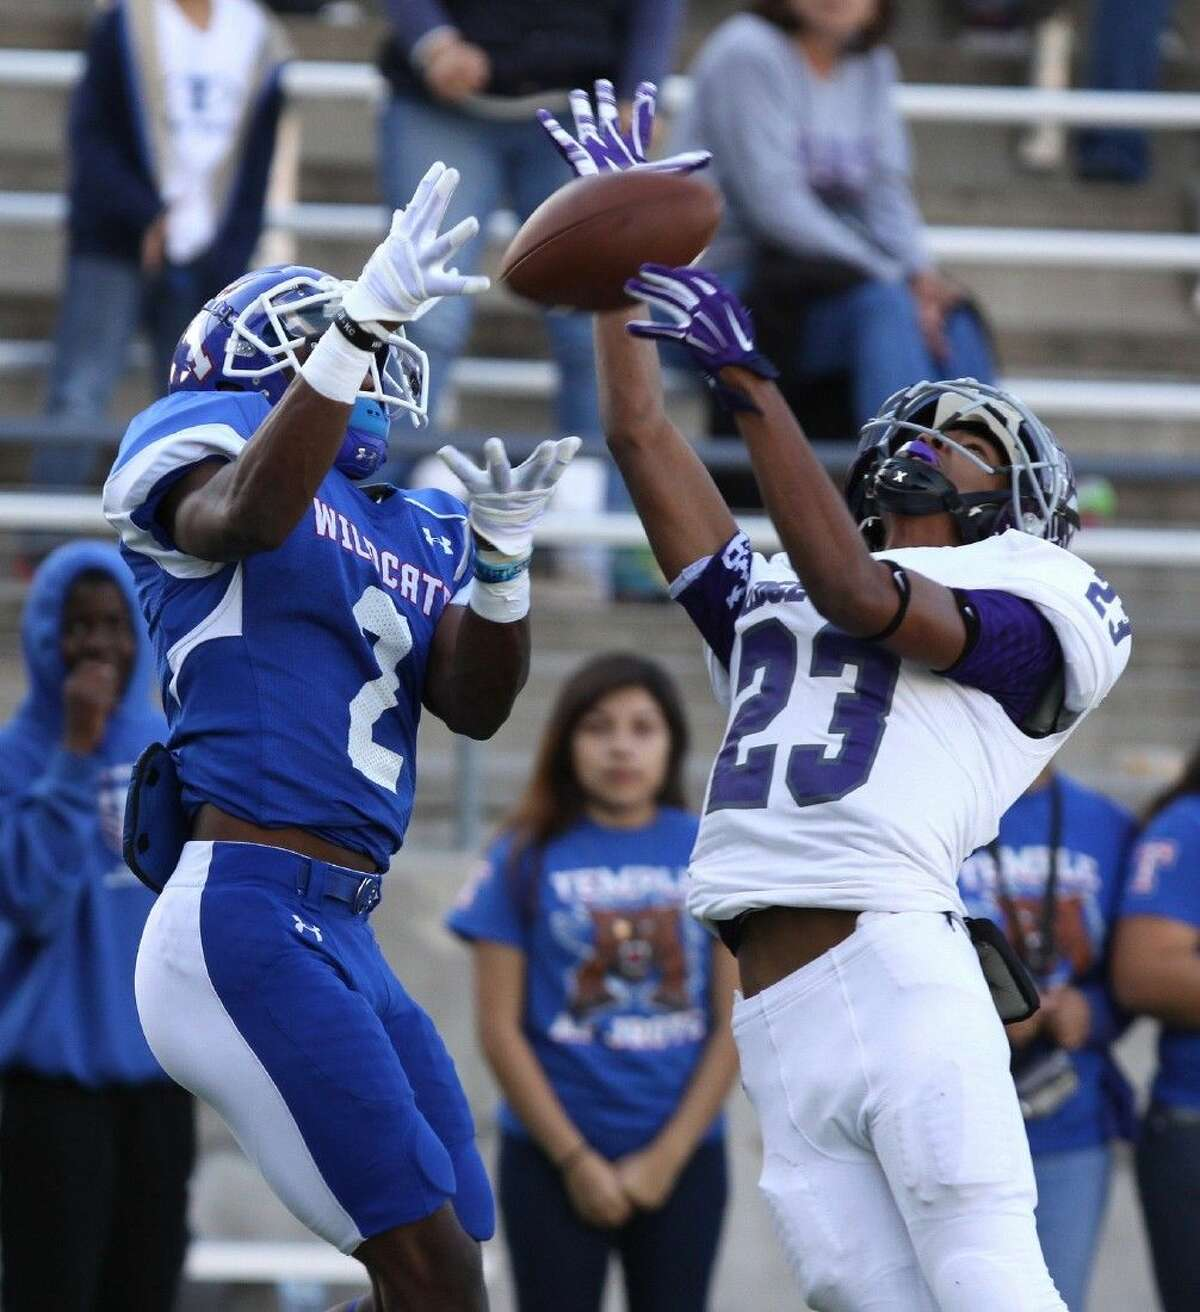 Ridge Point's Shyler Staton breaks up a pass to Temple's Aaron Freeman, Nov. 28 at Berry Center Stadium in Cypress.